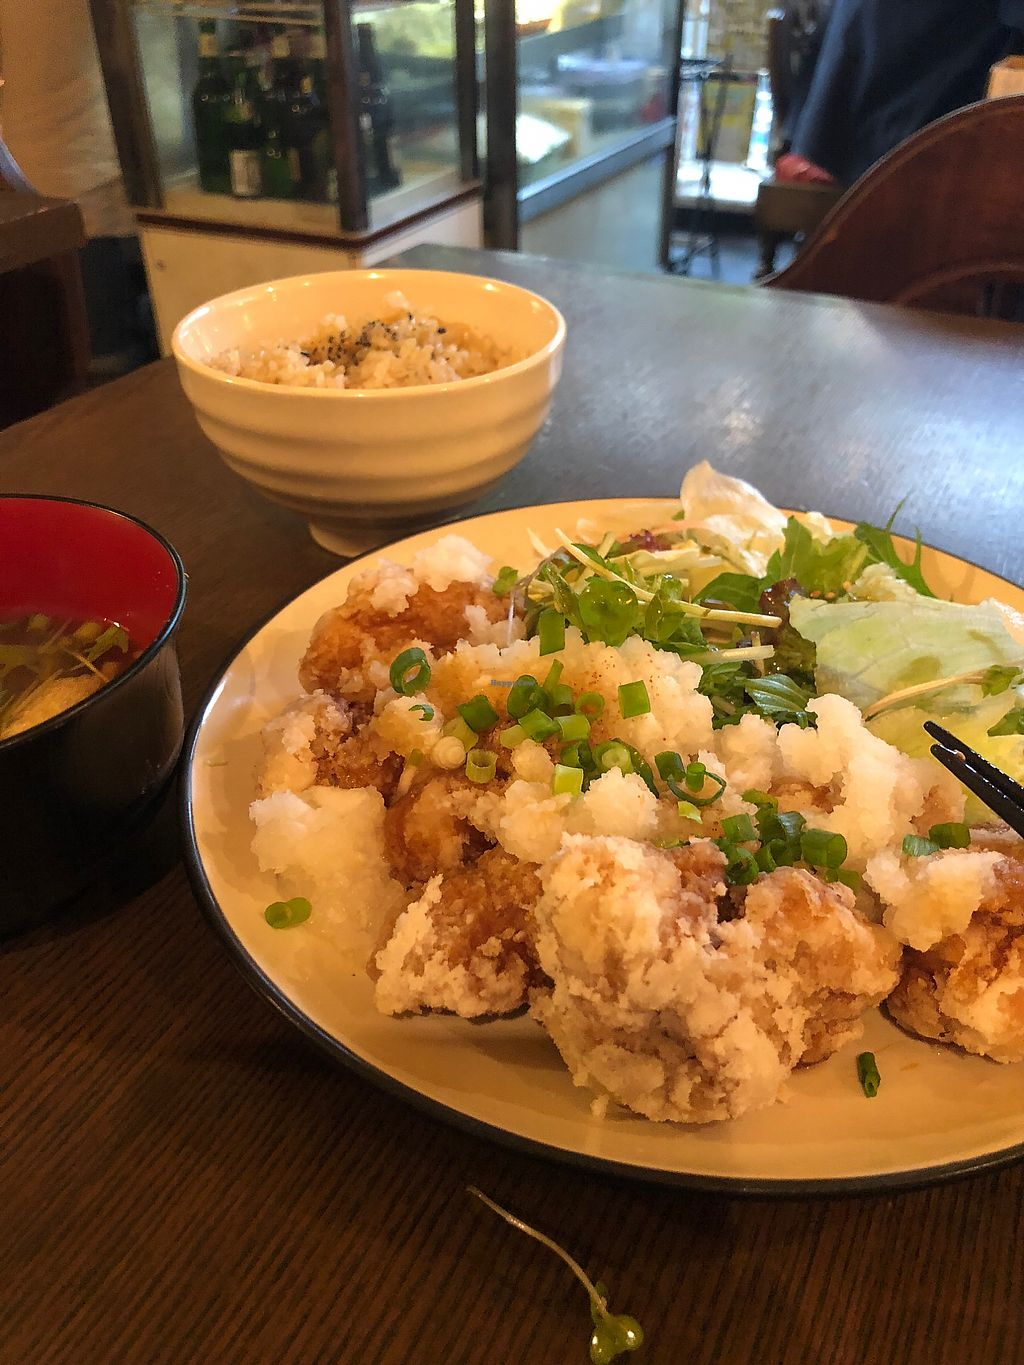 "Photo of Nagi Shokudo  by <a href=""/members/profile/AliAlbino"">AliAlbino</a> <br/>Fried tofu was TERRIFIC! Love it <br/> May 9, 2018  - <a href='/contact/abuse/image/13435/397250'>Report</a>"